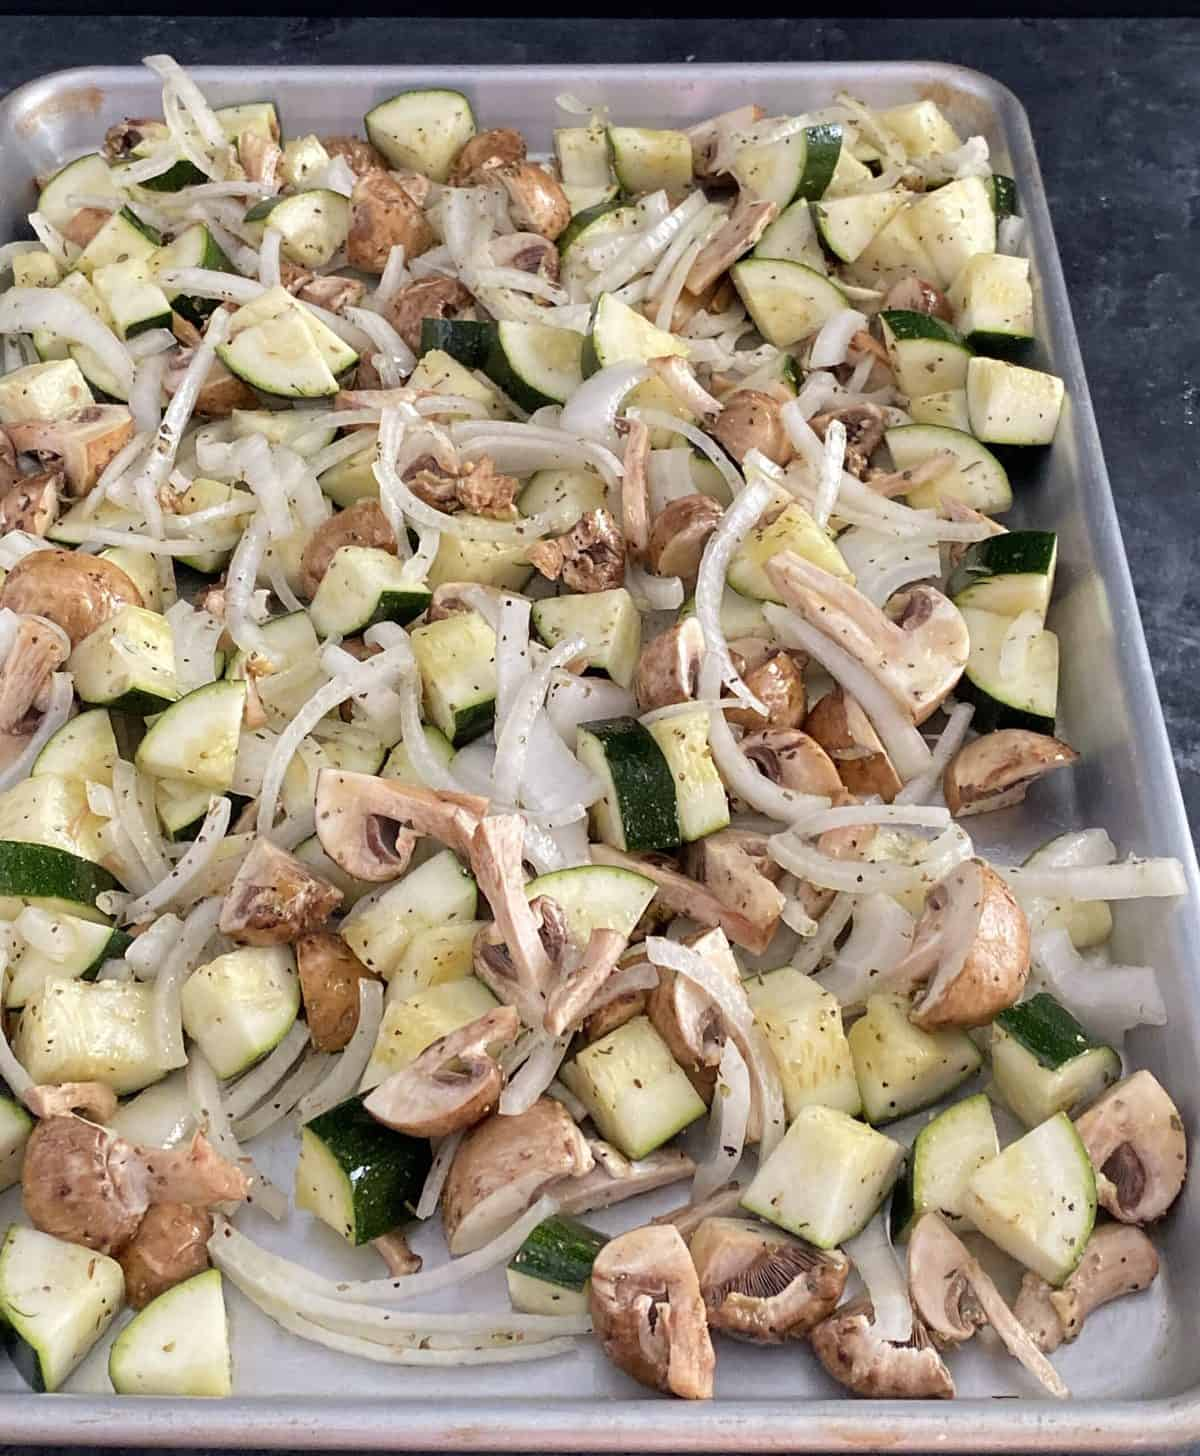 Chopped onion, mushroom, and zucchini on a roasting pan.